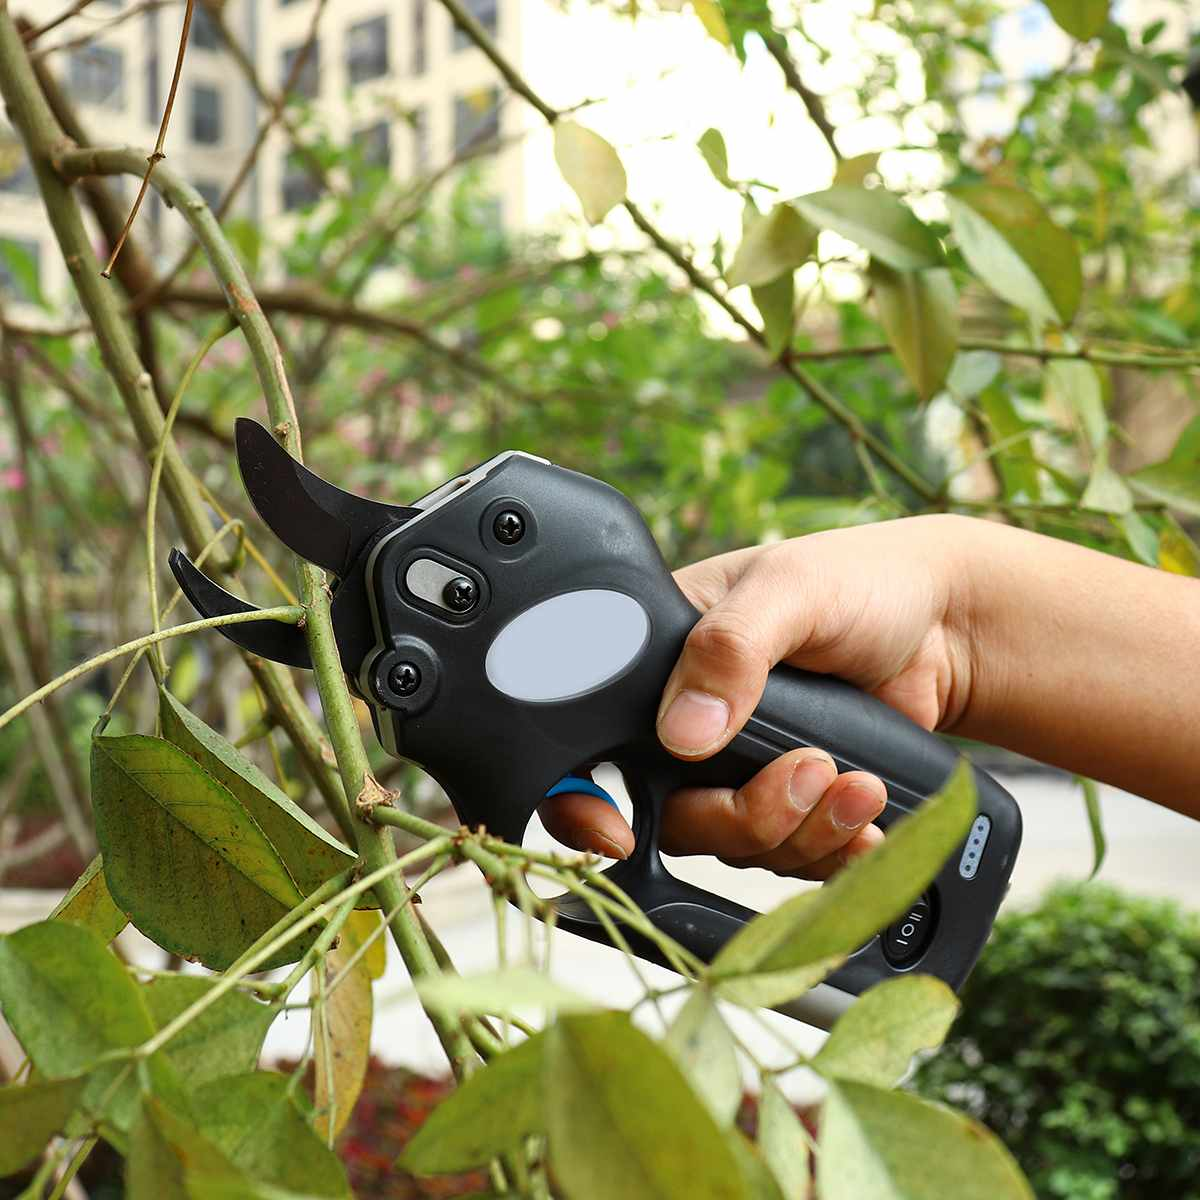 12V Wireless Electric Rechargeable Garden Scissors for Pruning Branches and stems with 4 Li-ion Battery 16